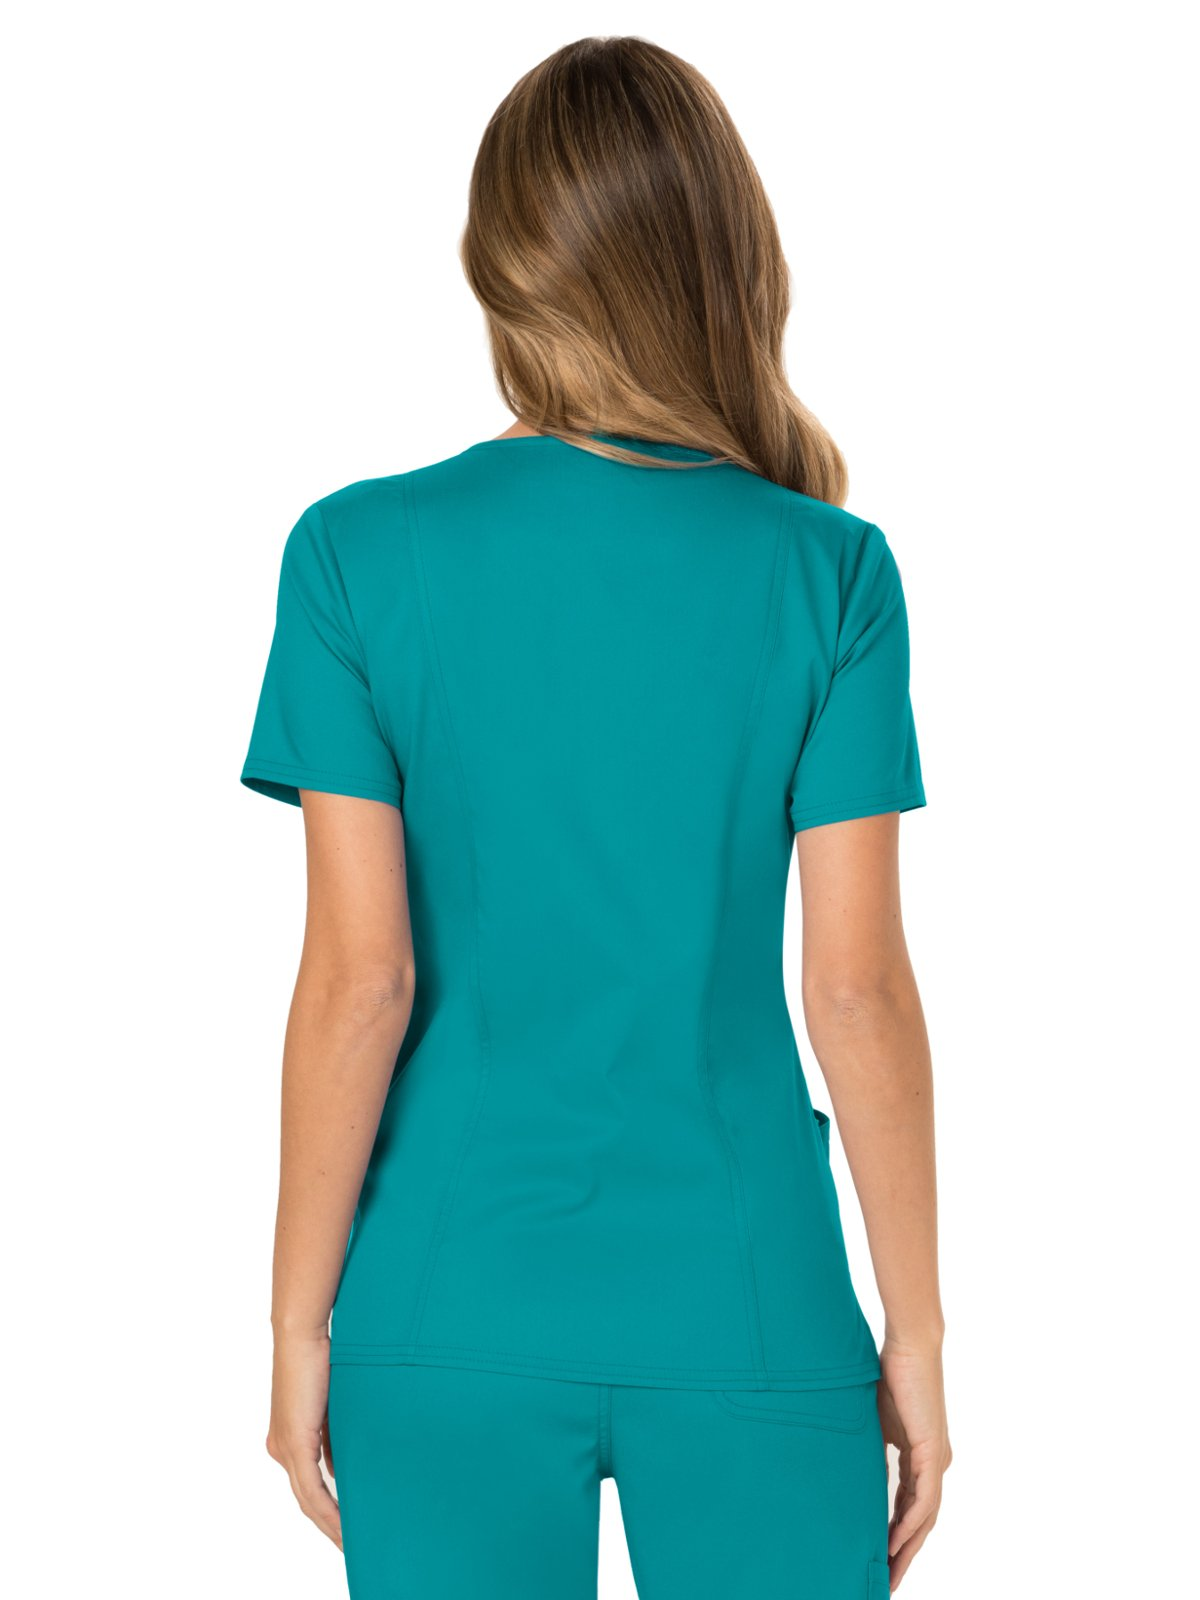 WW Revolution by Cherokee WW610 Women's Mock Wrap Scrub Top, Teal Blue, M by WW Revolution by Cherokee (Image #2)